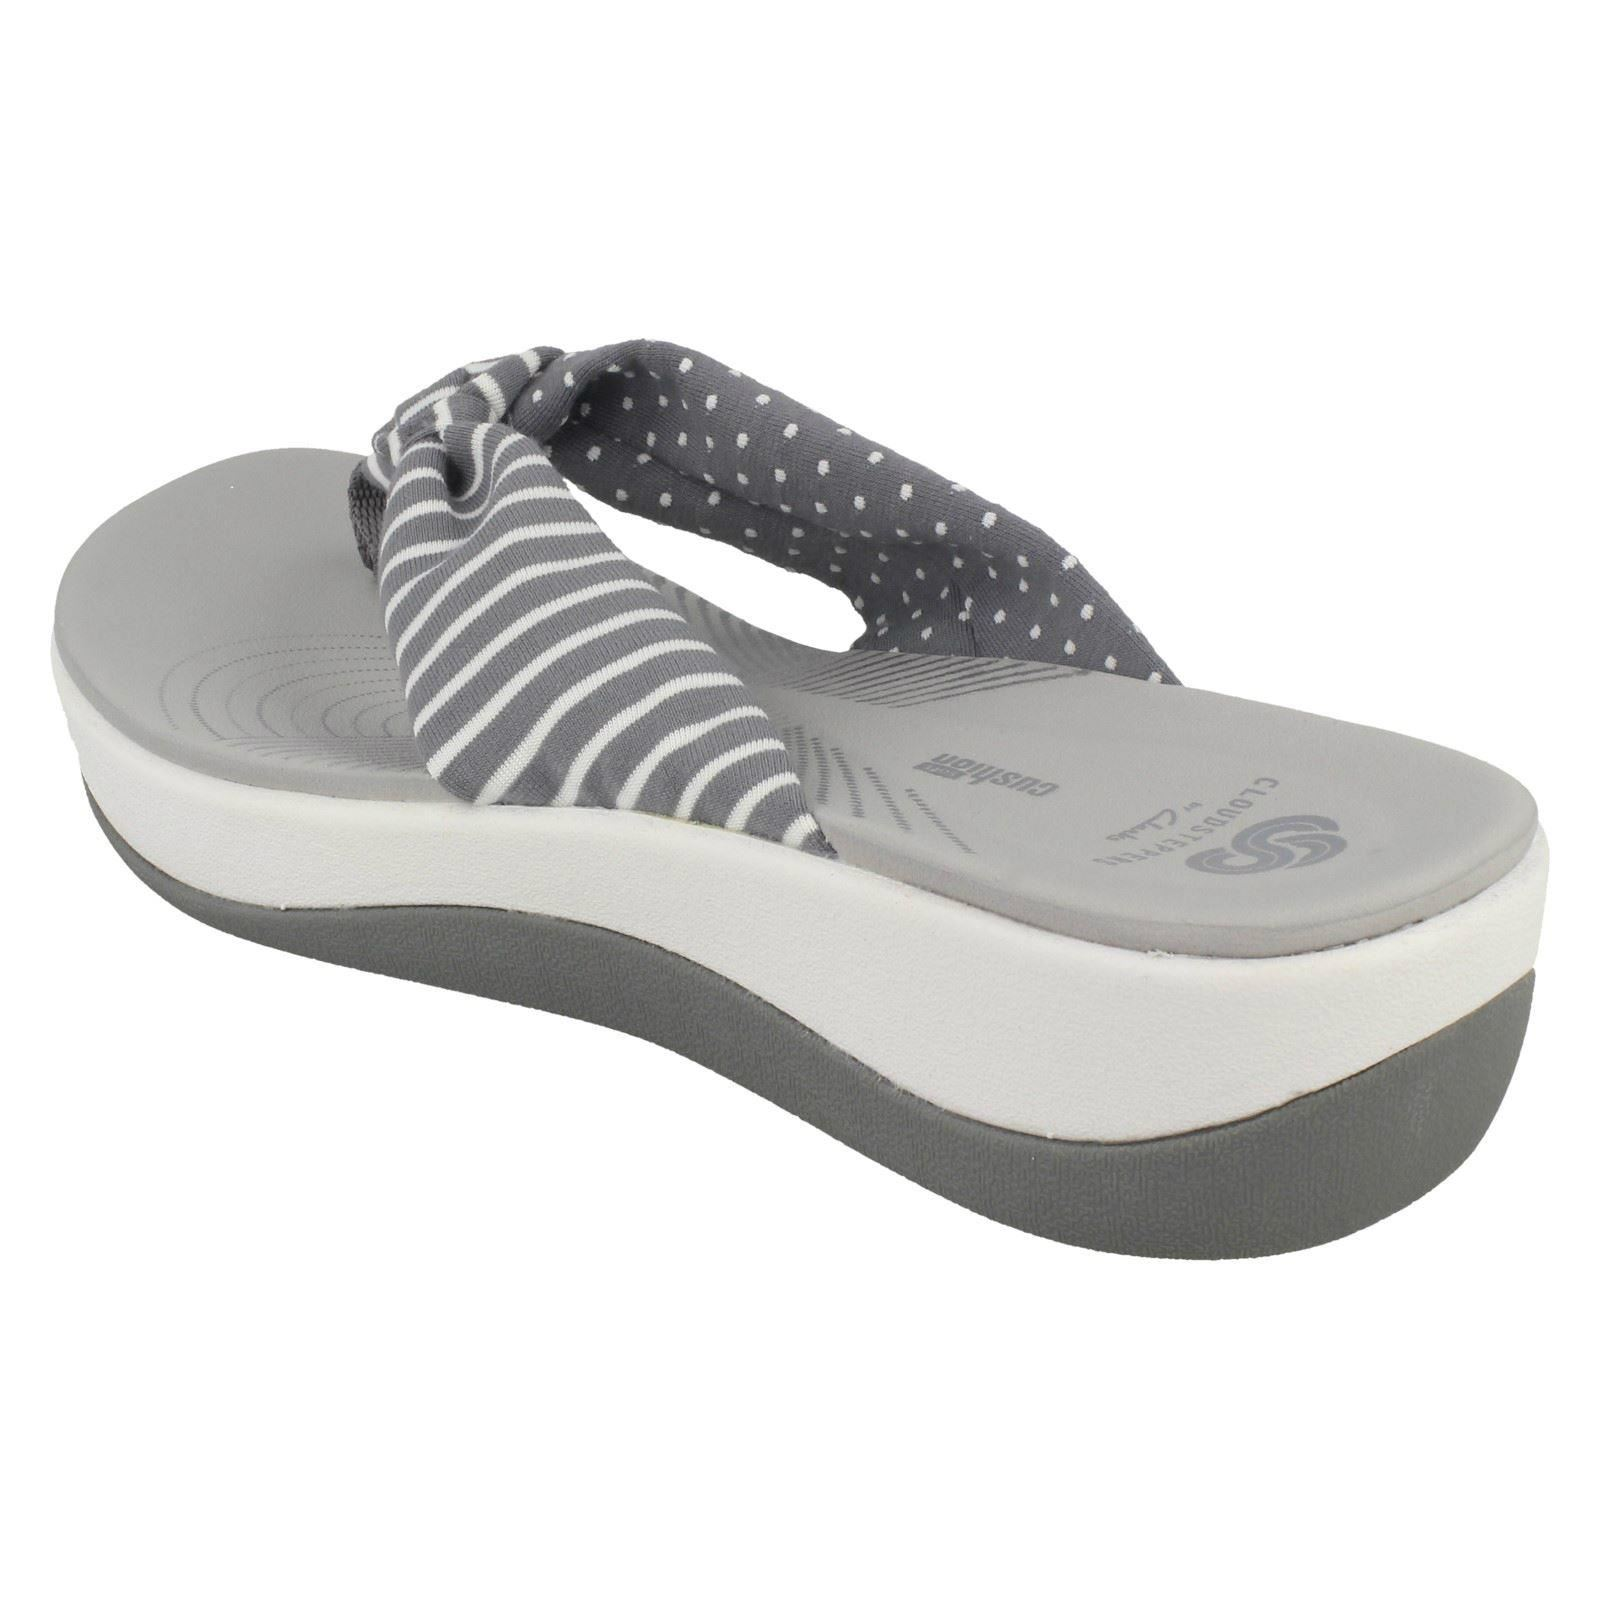 2e3497d95084 Clarks Arla Glison Ladies Cloudsteppers Toe Post Sandal Navy Combi UK 4.  About this product. Picture 1 of 10  Picture 2 of 10  Picture 3 of 10   Picture 4 of ...